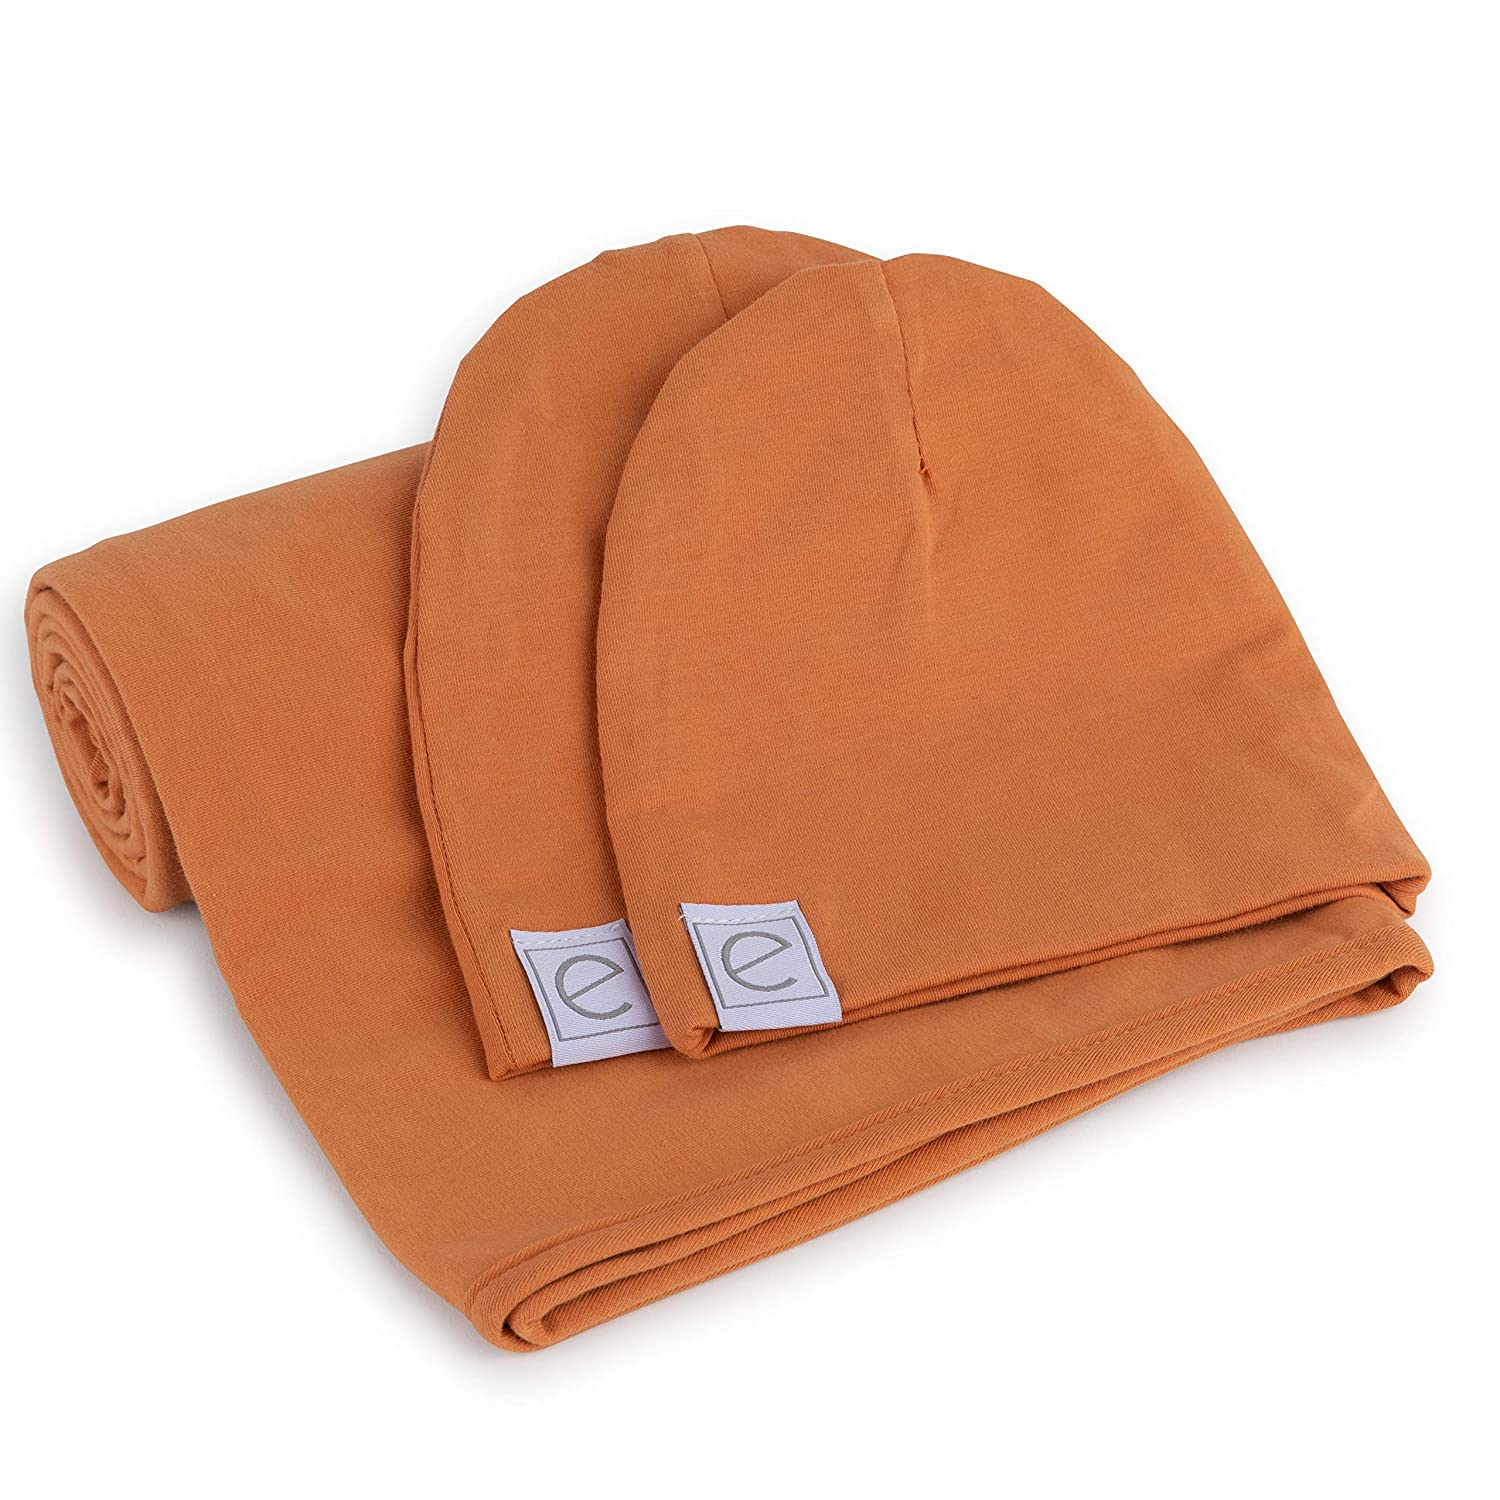 e5be59250 Cotton Knit Jersey Swaddle Blanket and 2 Beanie Gift Set, Large Receiving  Blanket - Butterscotch